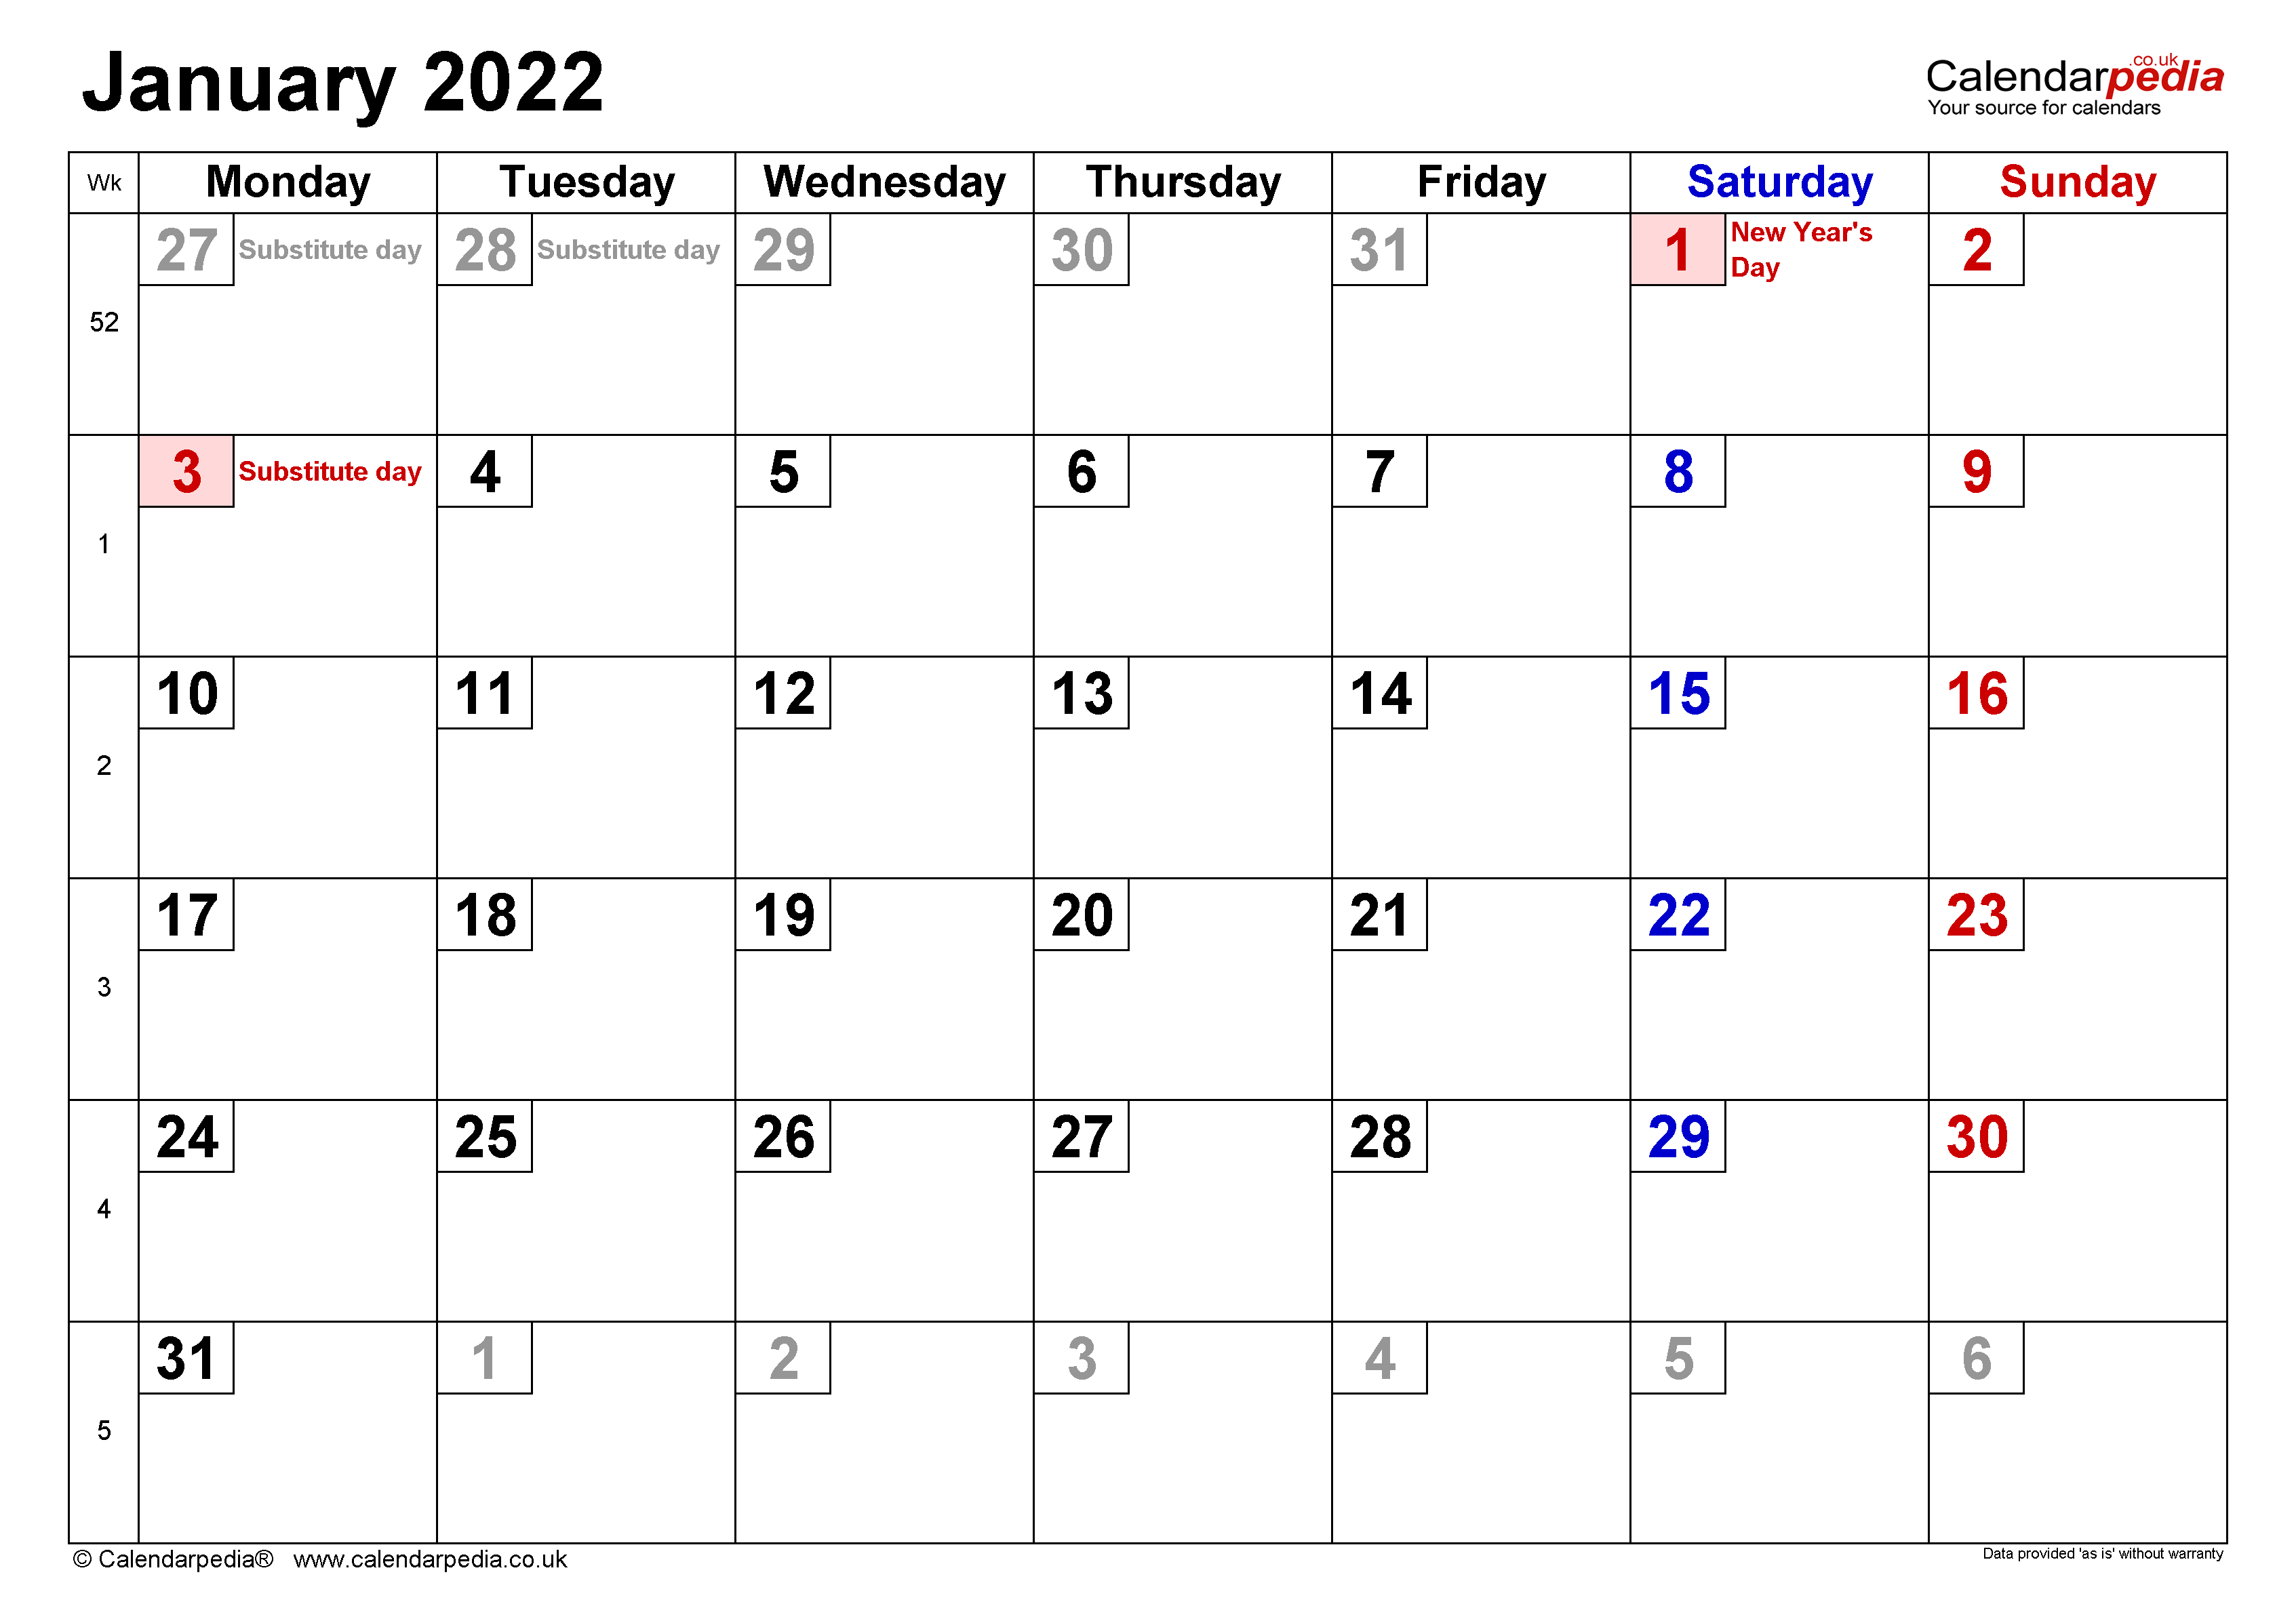 Calendar January 2022 (UK) with Excel, Word and PDF templates